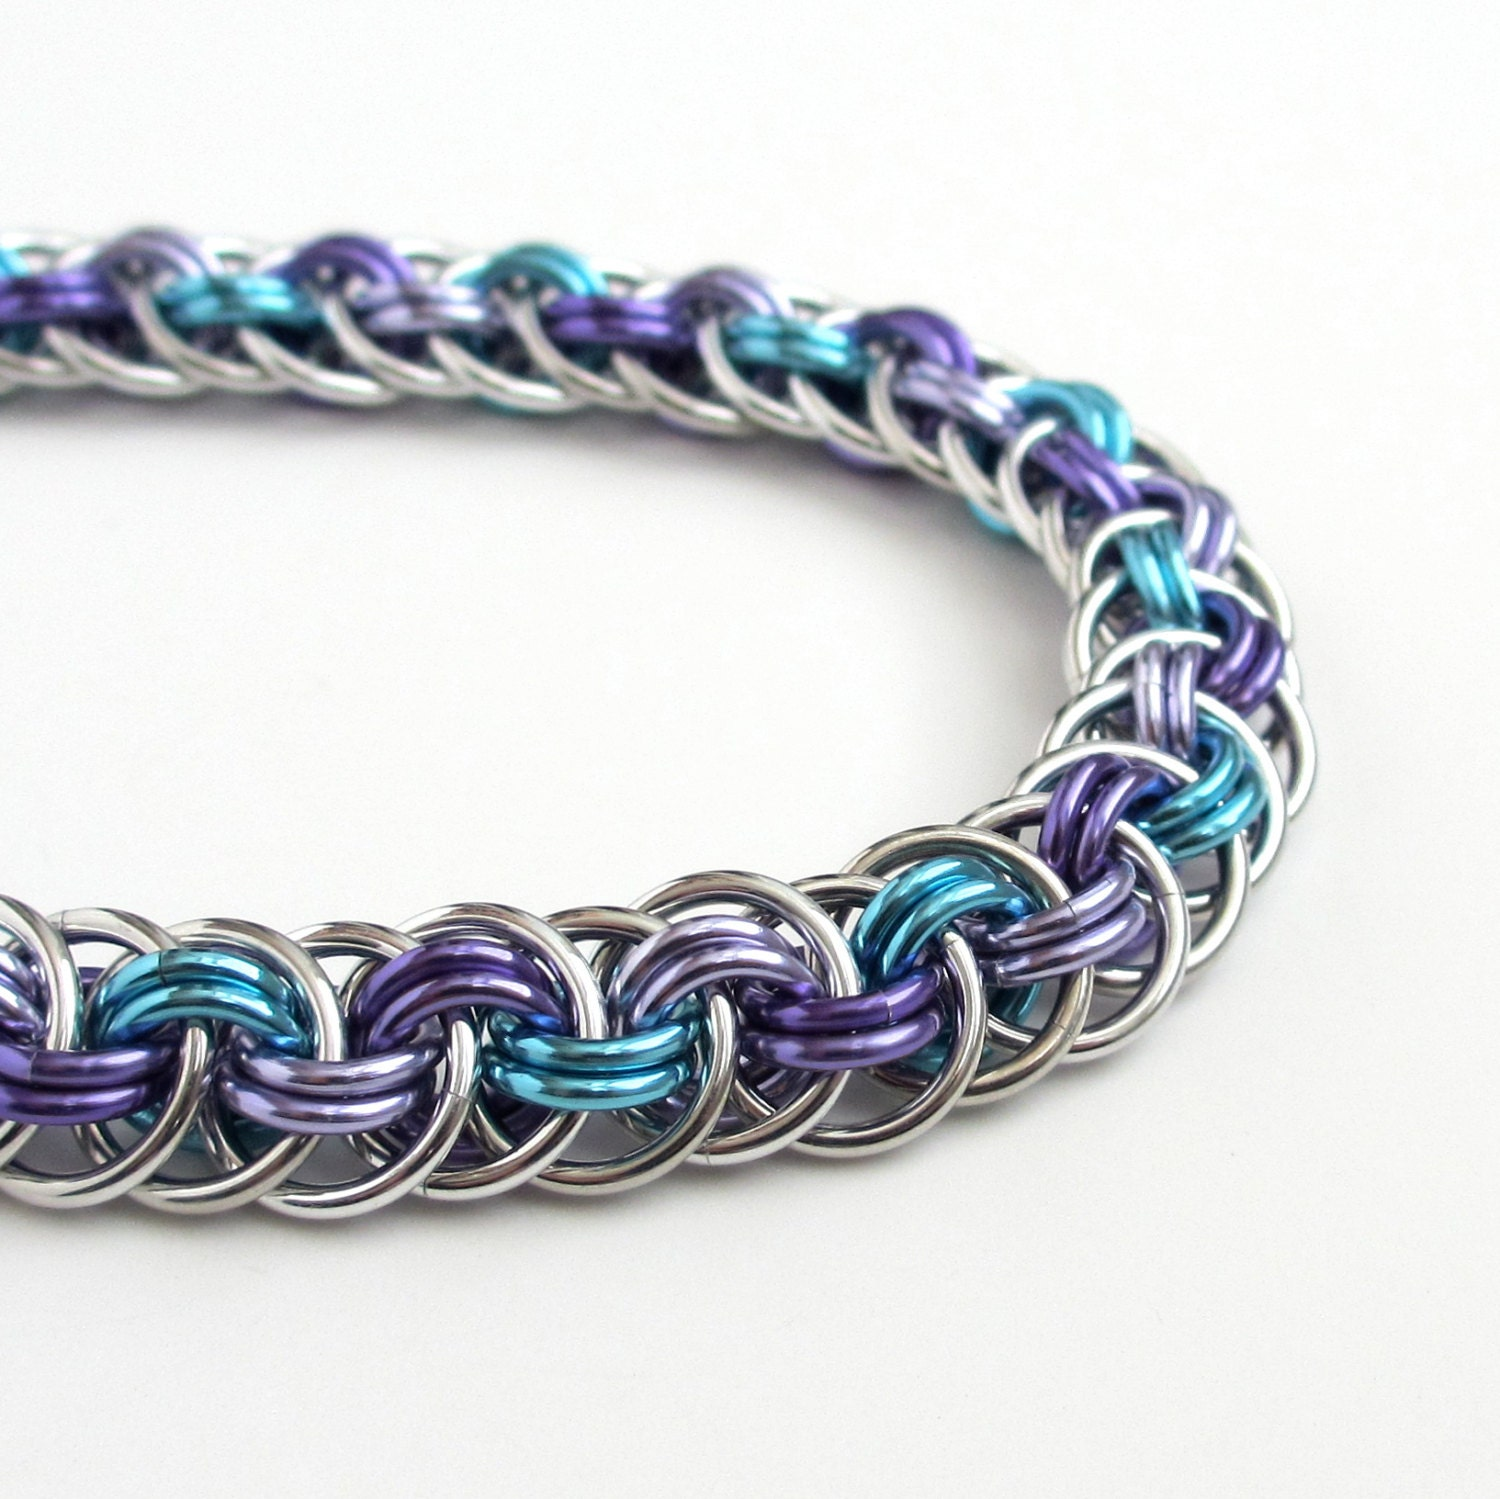 How To Basket Weave Bracelet : Chainmail bracelet viper basket weave in turquoise lavender